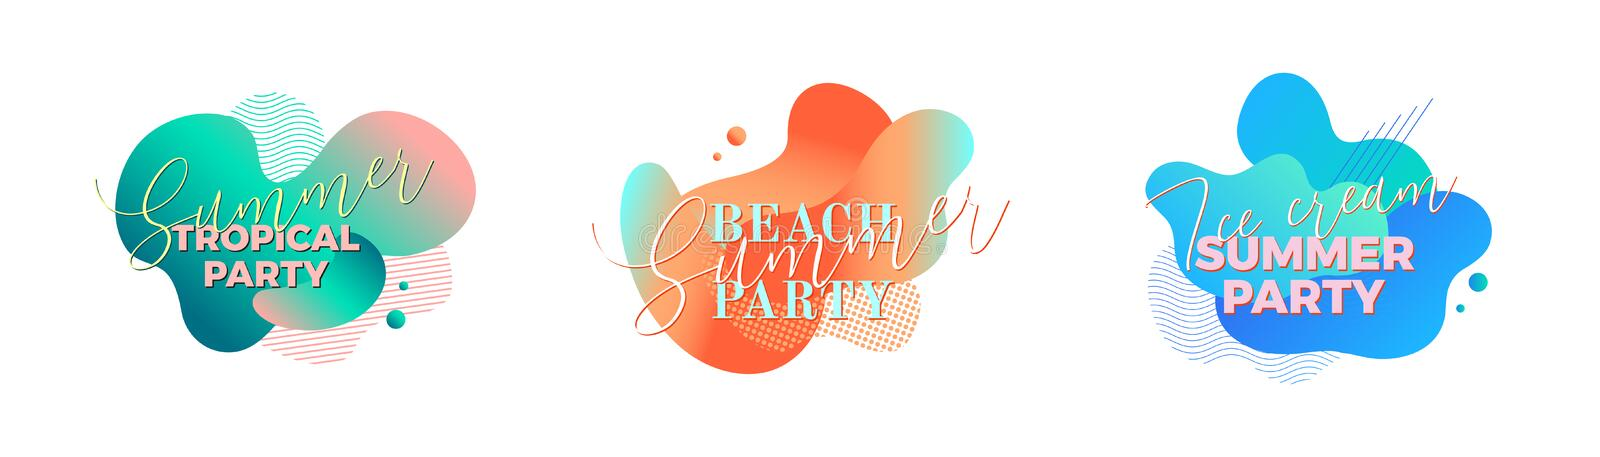 Summer party. Design templates with fluid shapes royalty free stock images